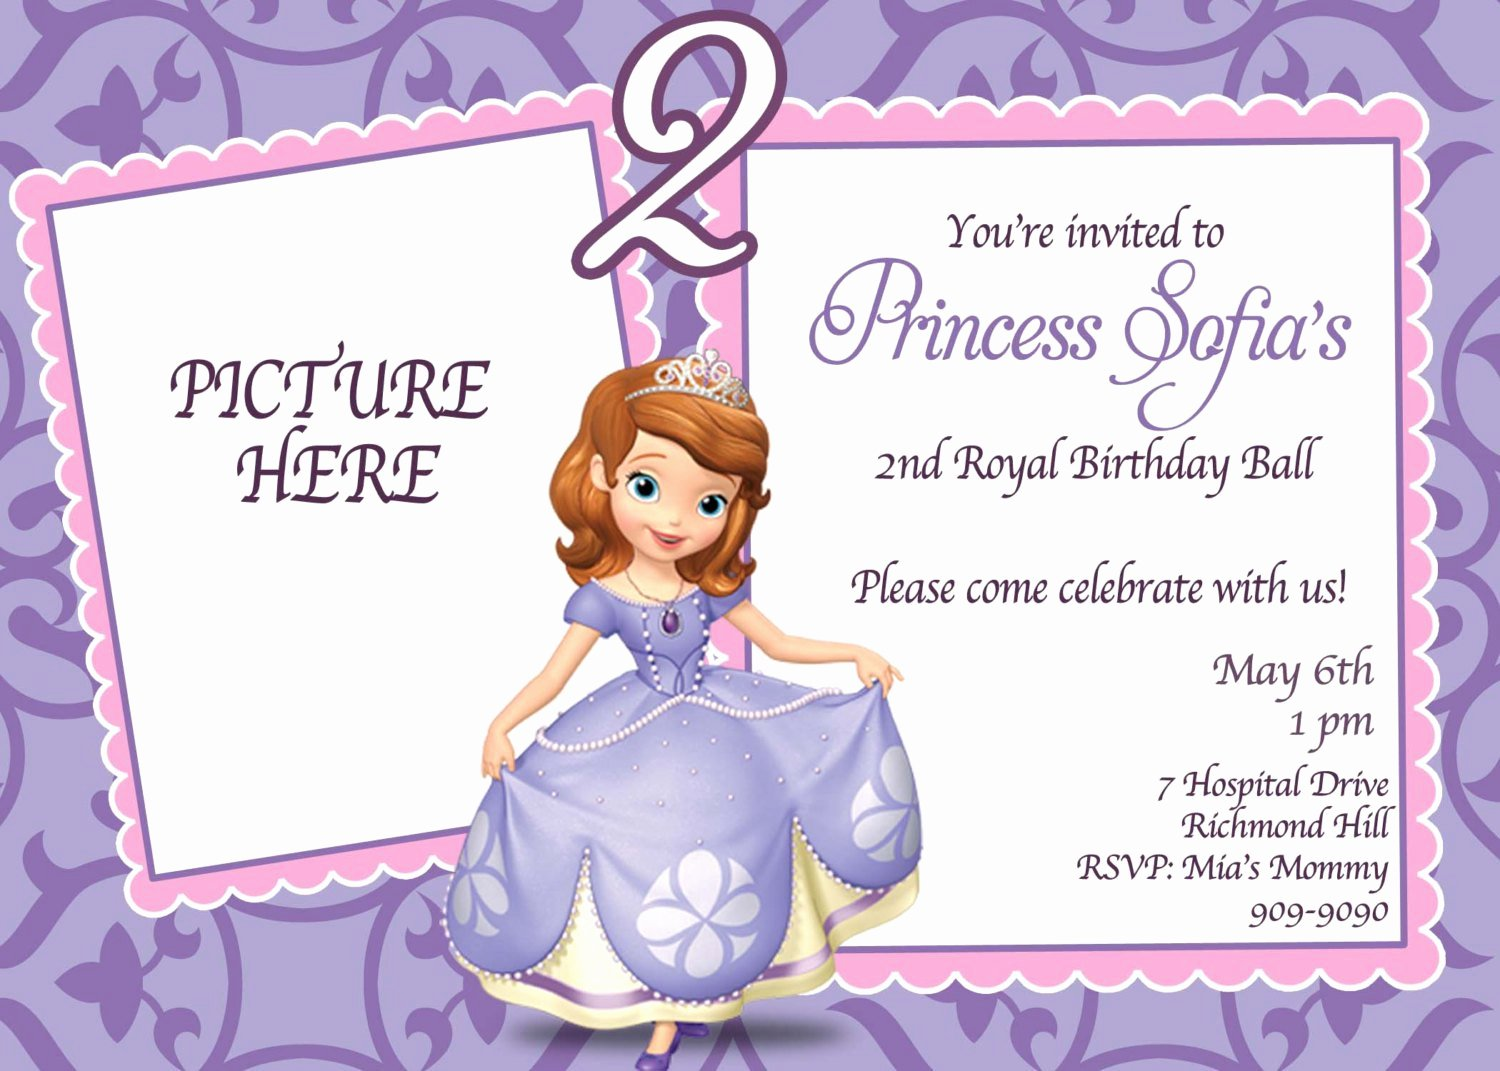 Sofia the First Invitation Templates Beautiful sofia the First Invitations Templates